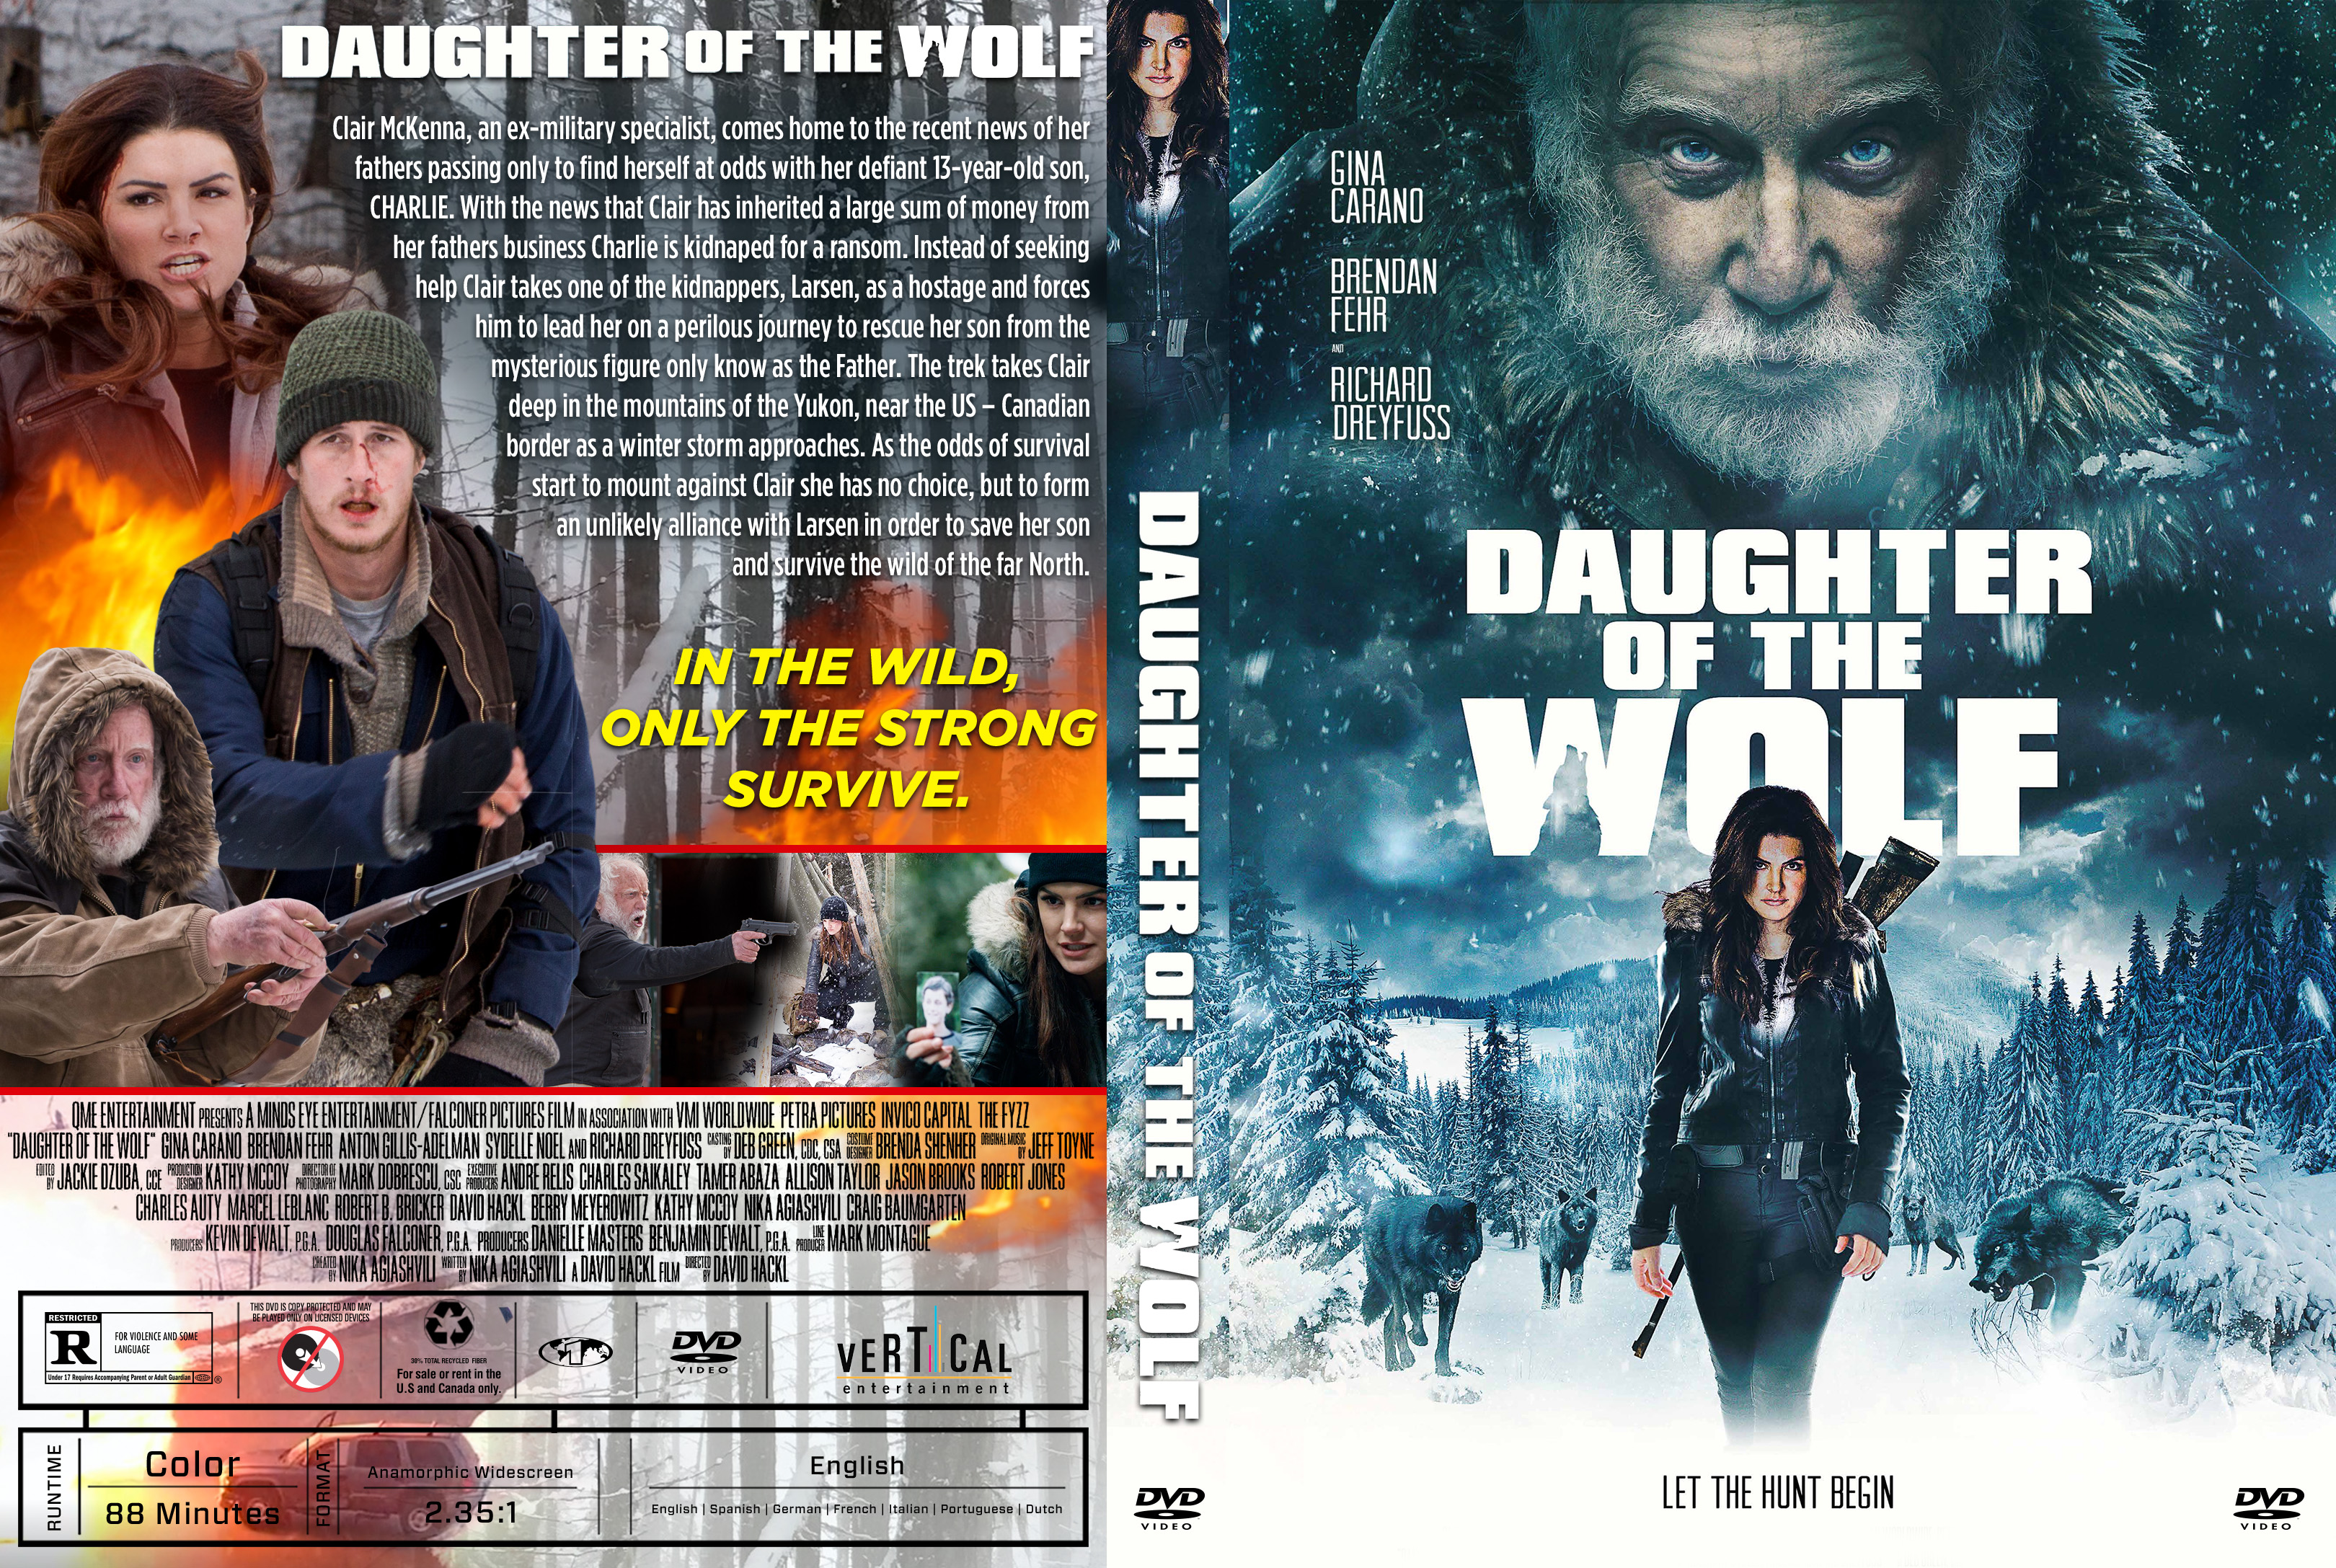 Daughter of the Wolf DVD Cover | Cover Addict - Free DVD, Bluray ...